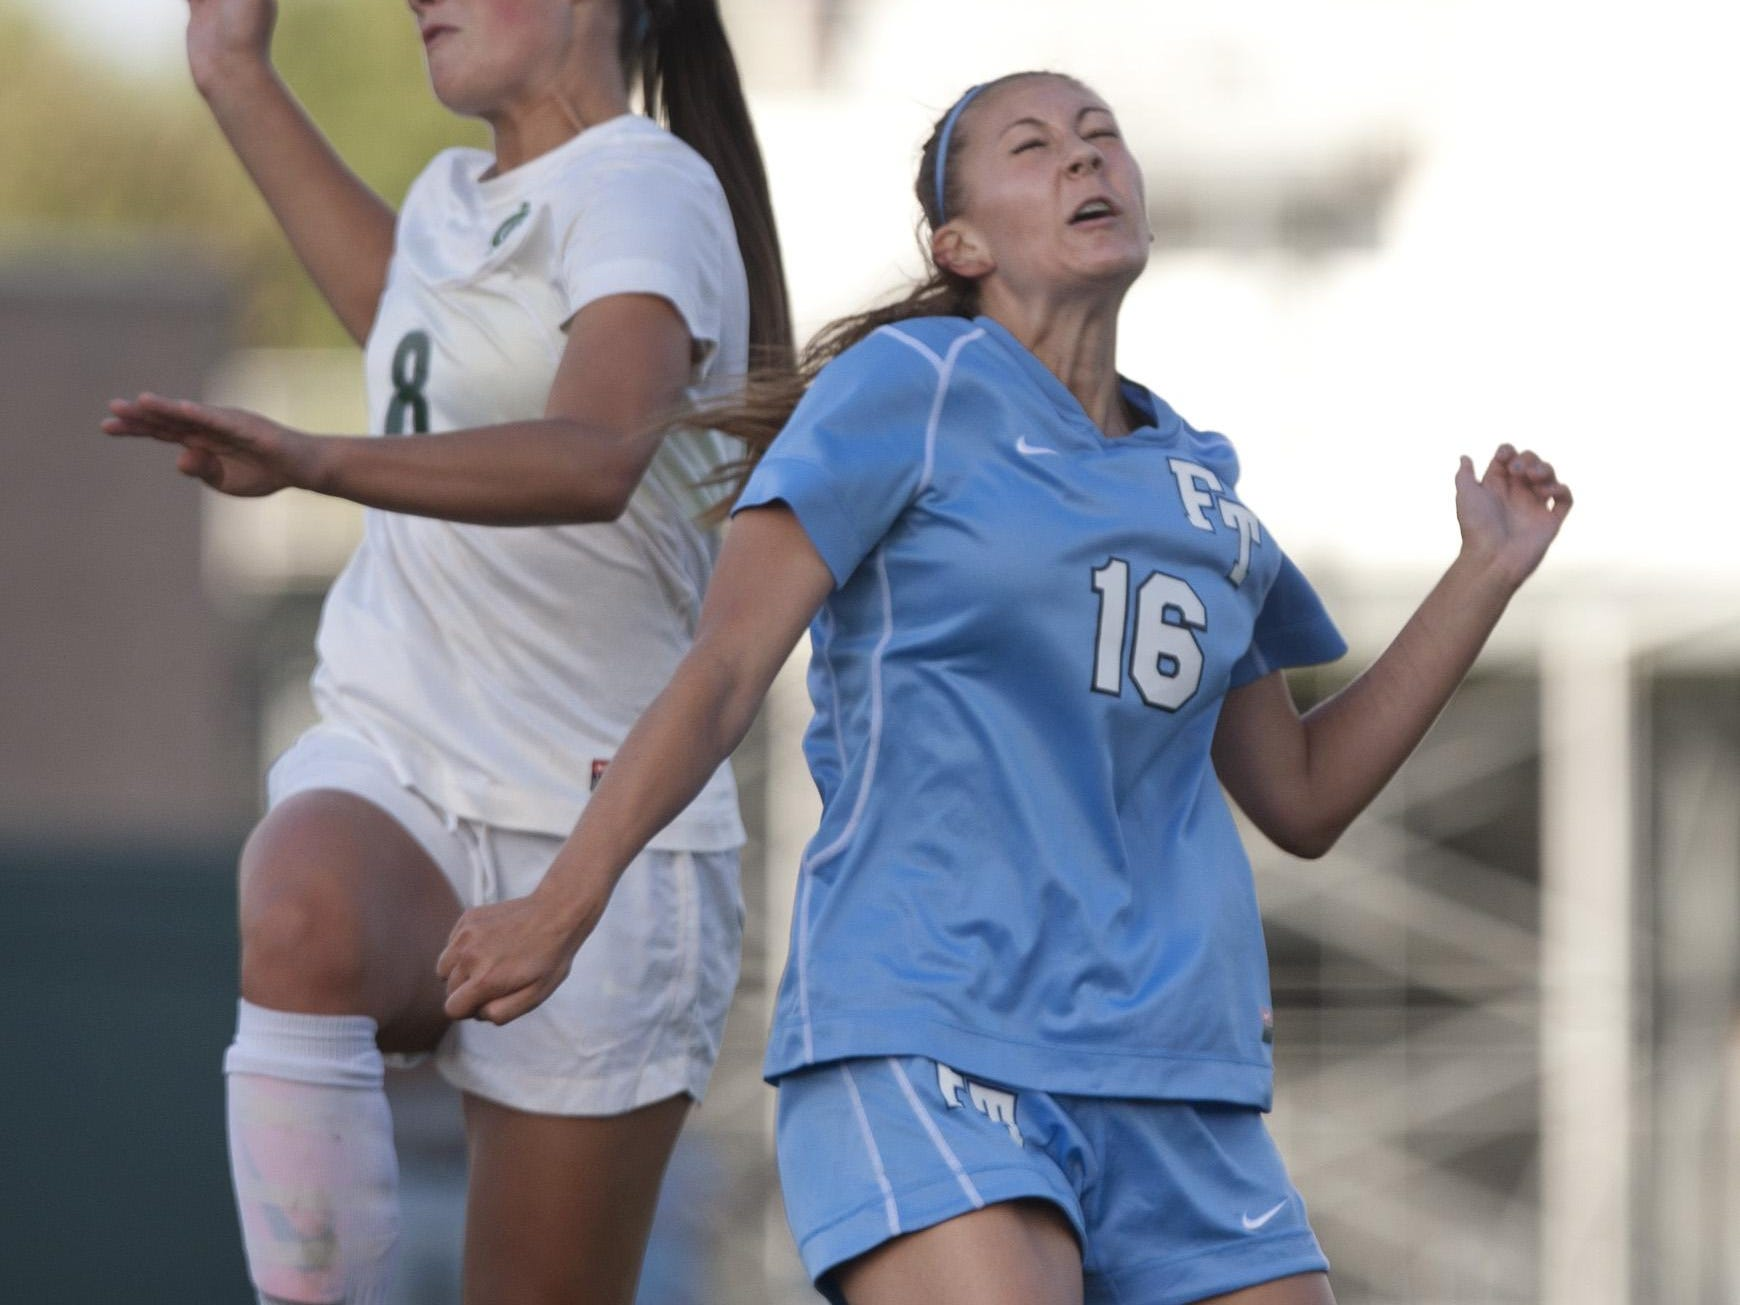 Colts Neck's Amanda Visco and Freehold Township's Megan Cavrak battle for a header during Freehold Township Girls Soccer vs Colts Neck on Thursday September 26, 2013 Colts Neck NJ - Staff Photographer/Peter Ackerman/Asbury Park Press ASB 0926 Freehold Twp Soccer gsccnft130926c